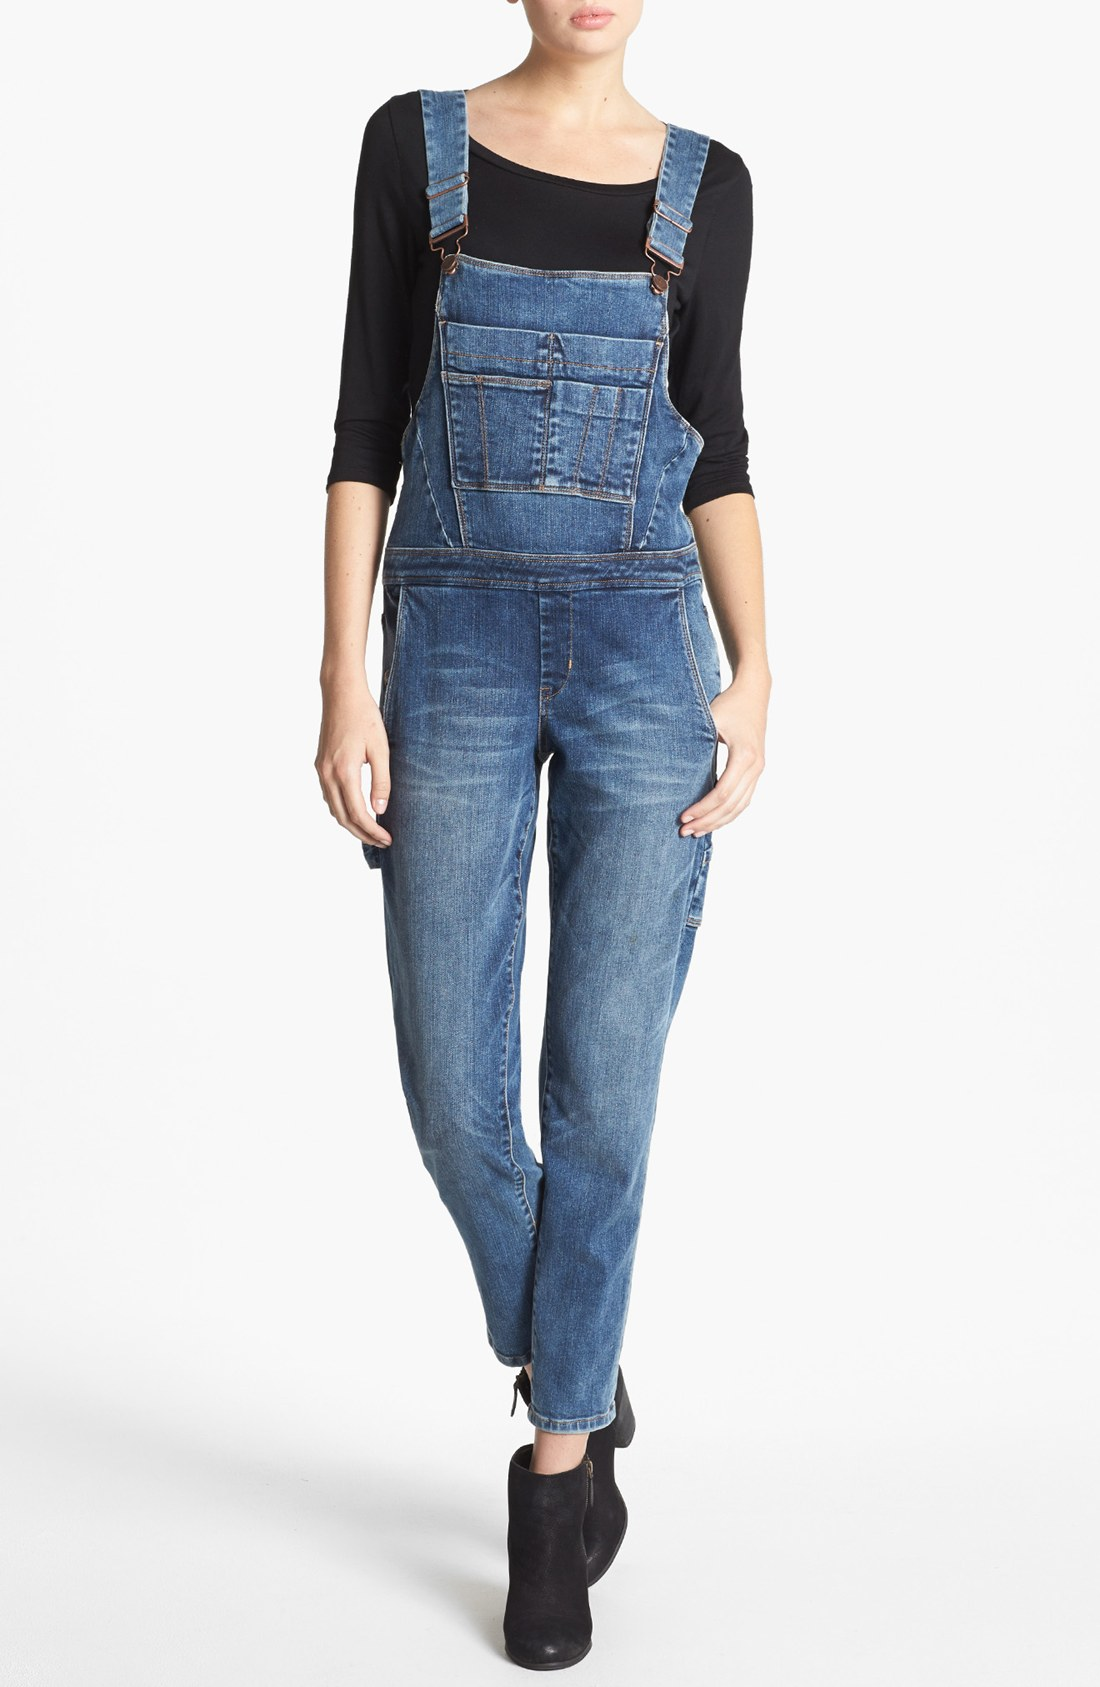 Denim overalls are back in action, and you'll find a wide array of styles here at Gap. Low Key Denim Rompers. Simple and easy to throw on in a jiffy, denim jumpsuits and rompers have become a staple for casual style that goes anywhere.